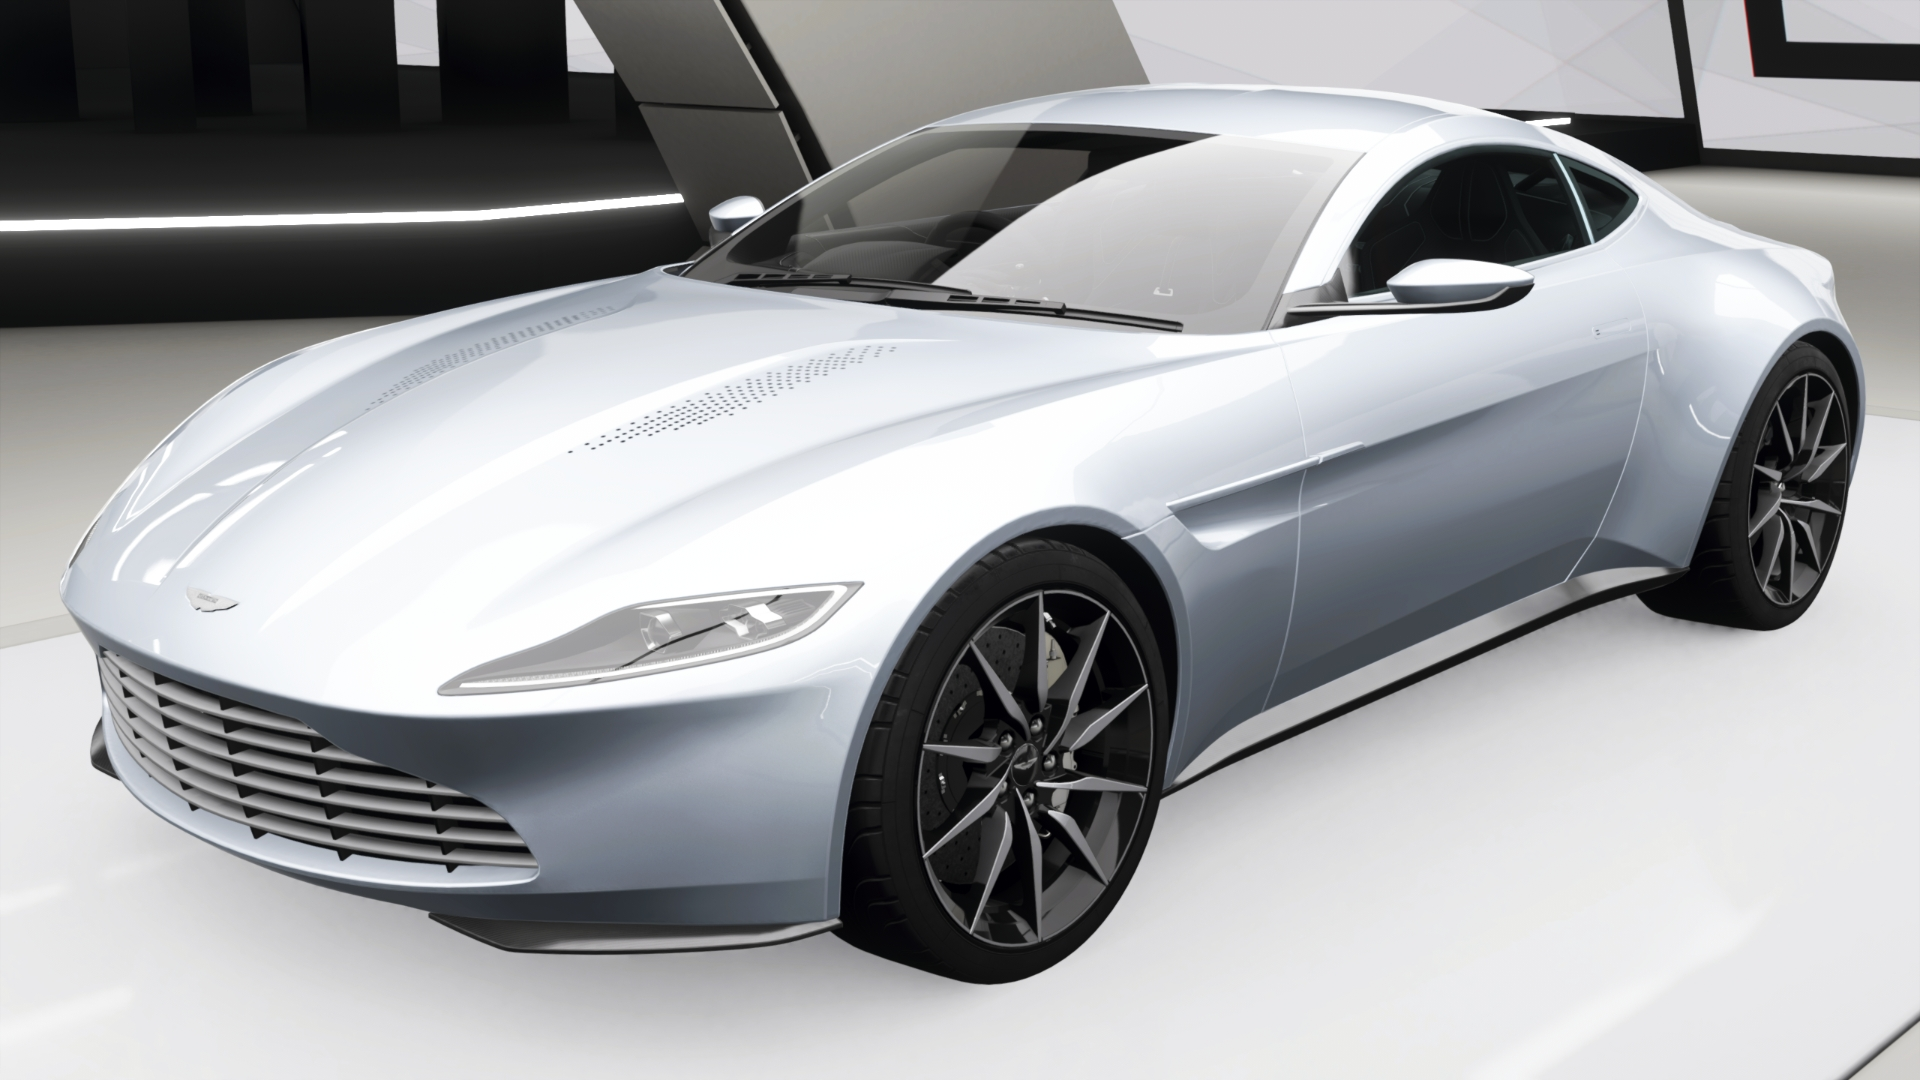 james bond edition aston martin db10 | forza motorsport wiki